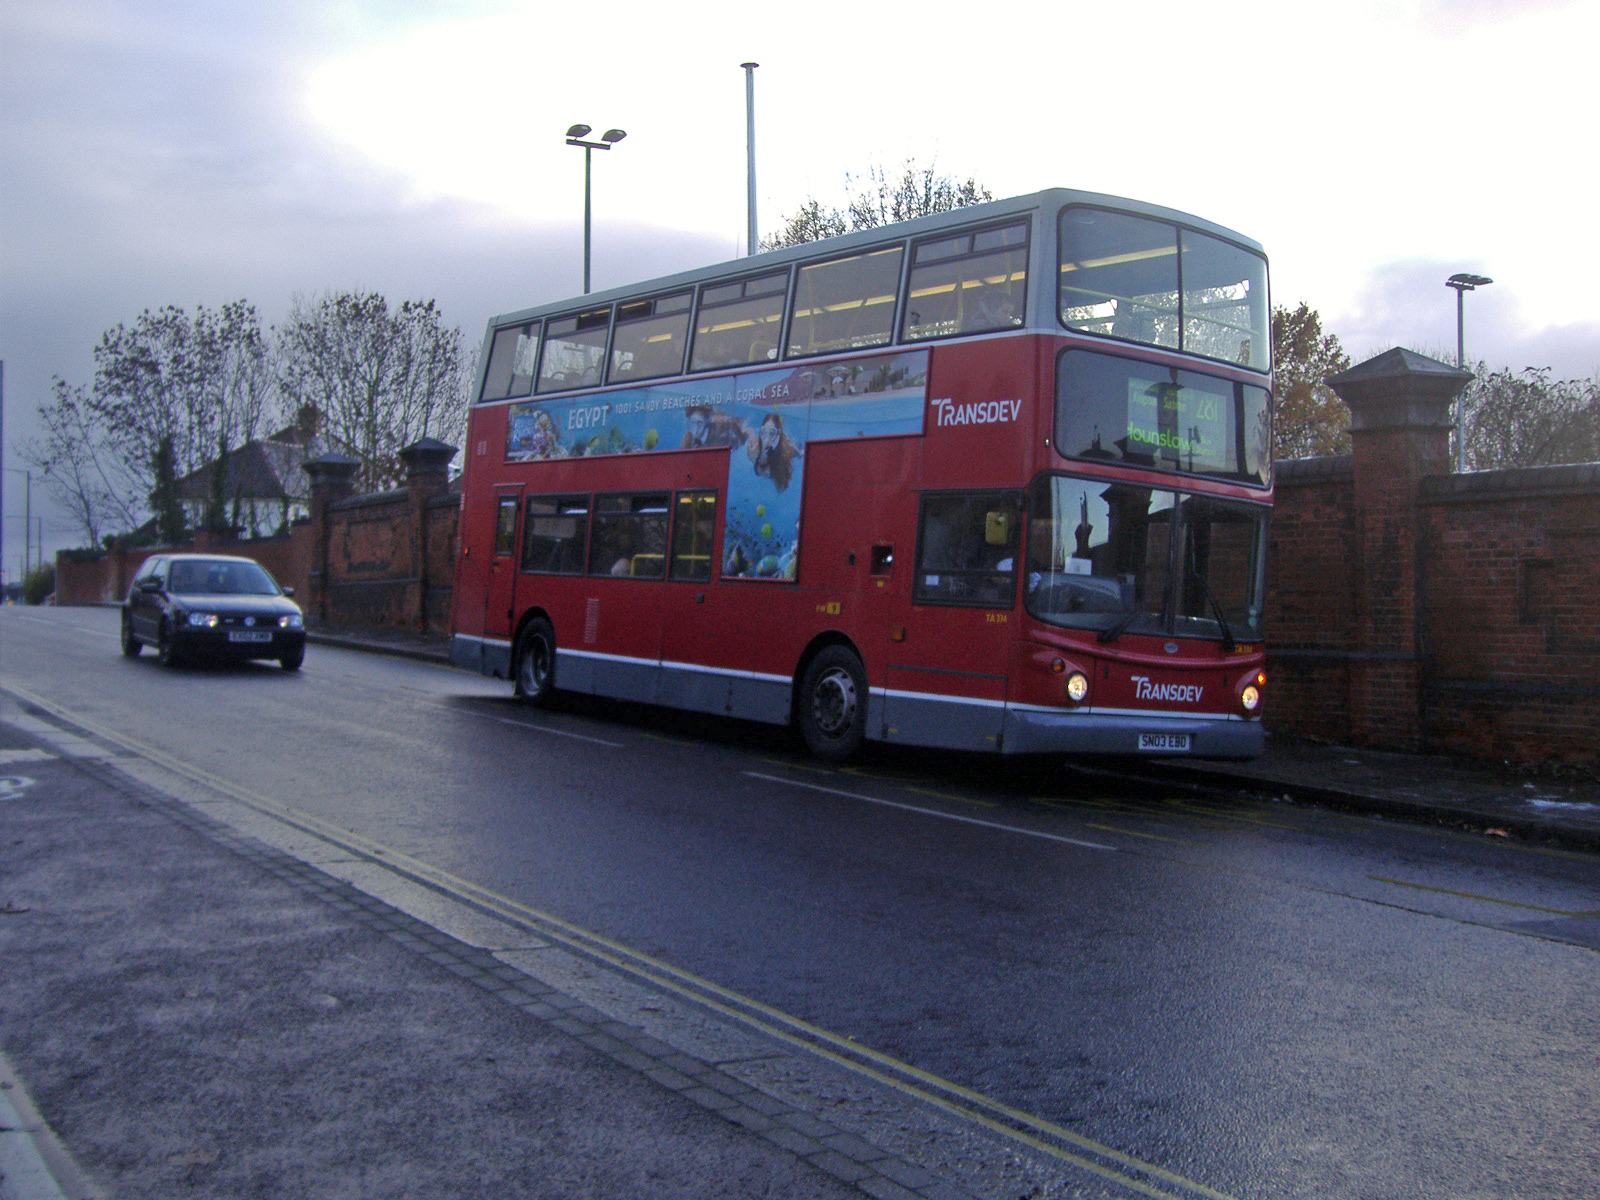 file:london buses route 281 fulwell (2) - wikimedia commons